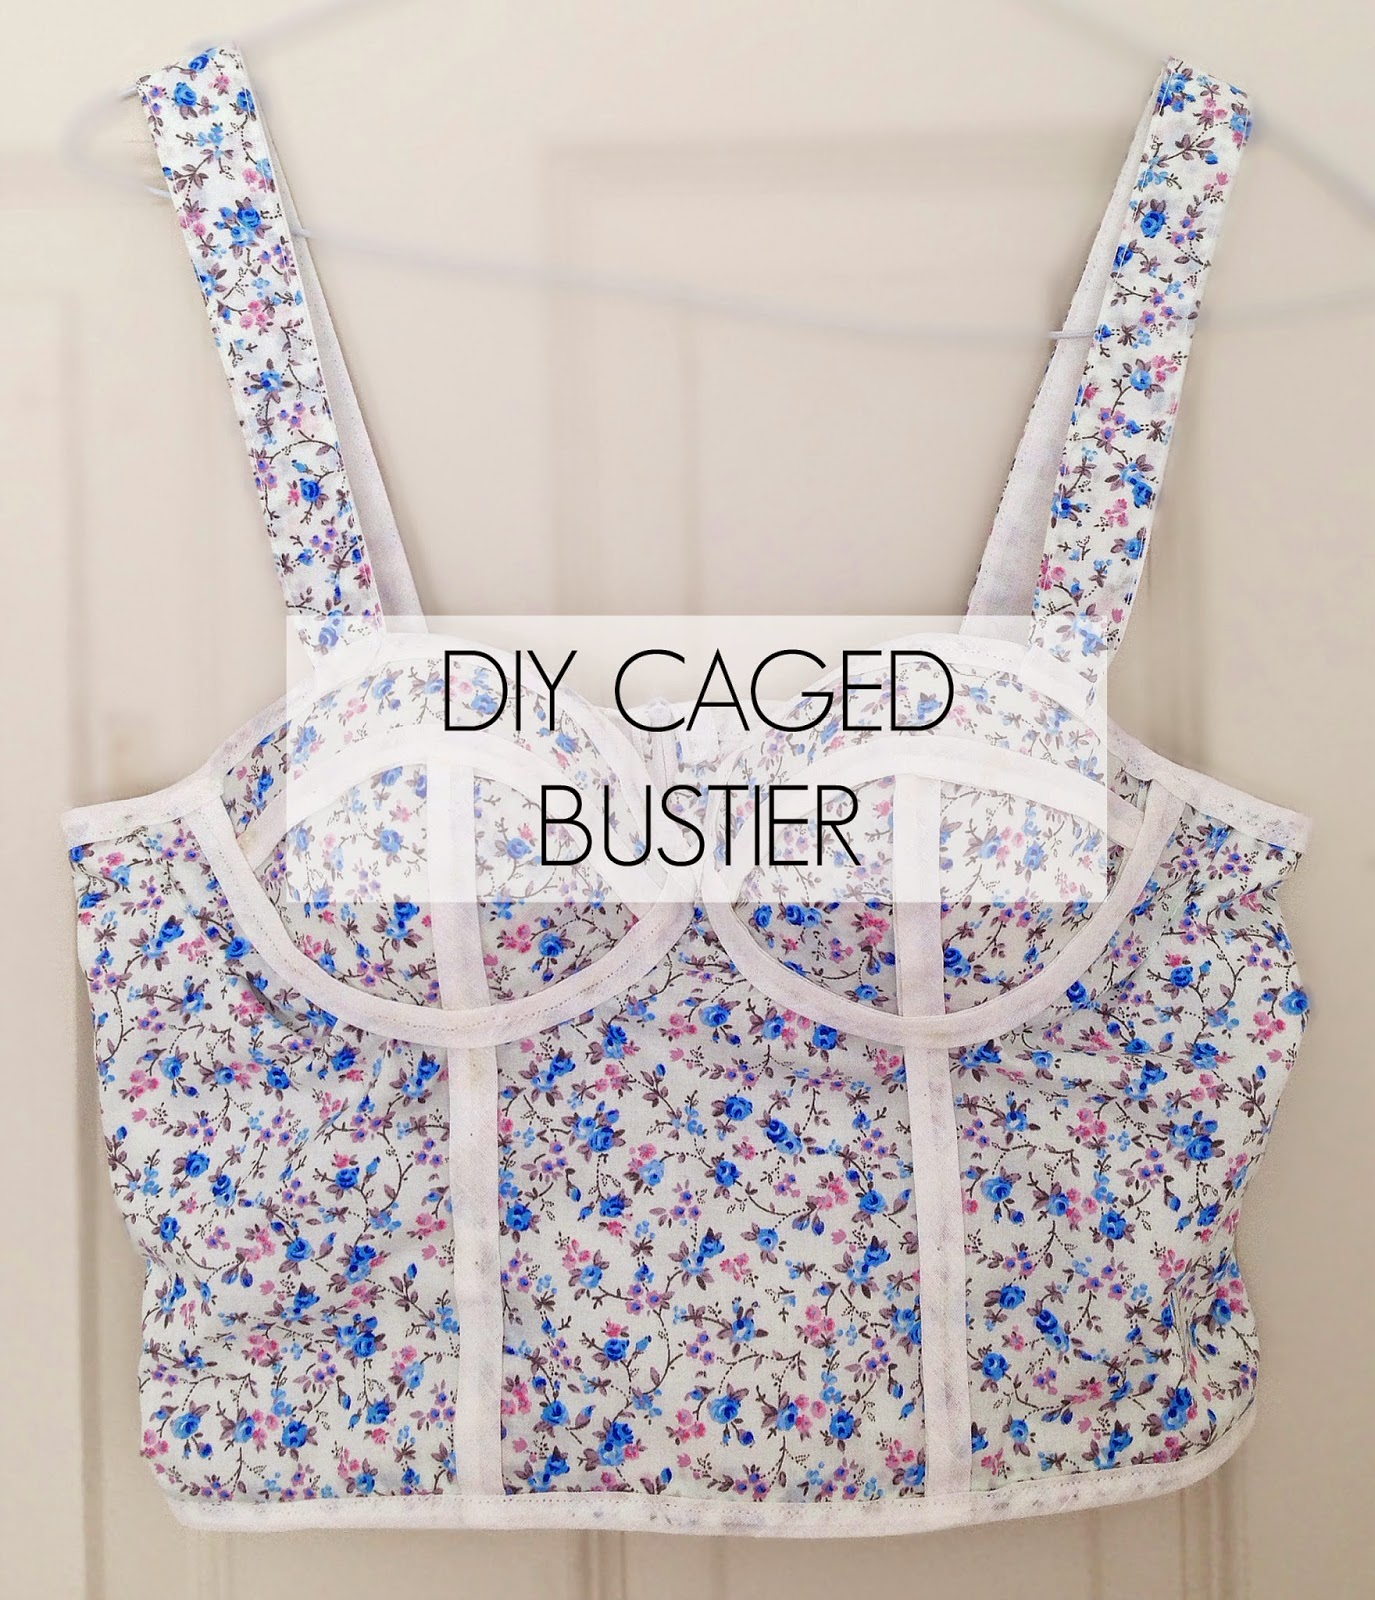 diy caged bustier